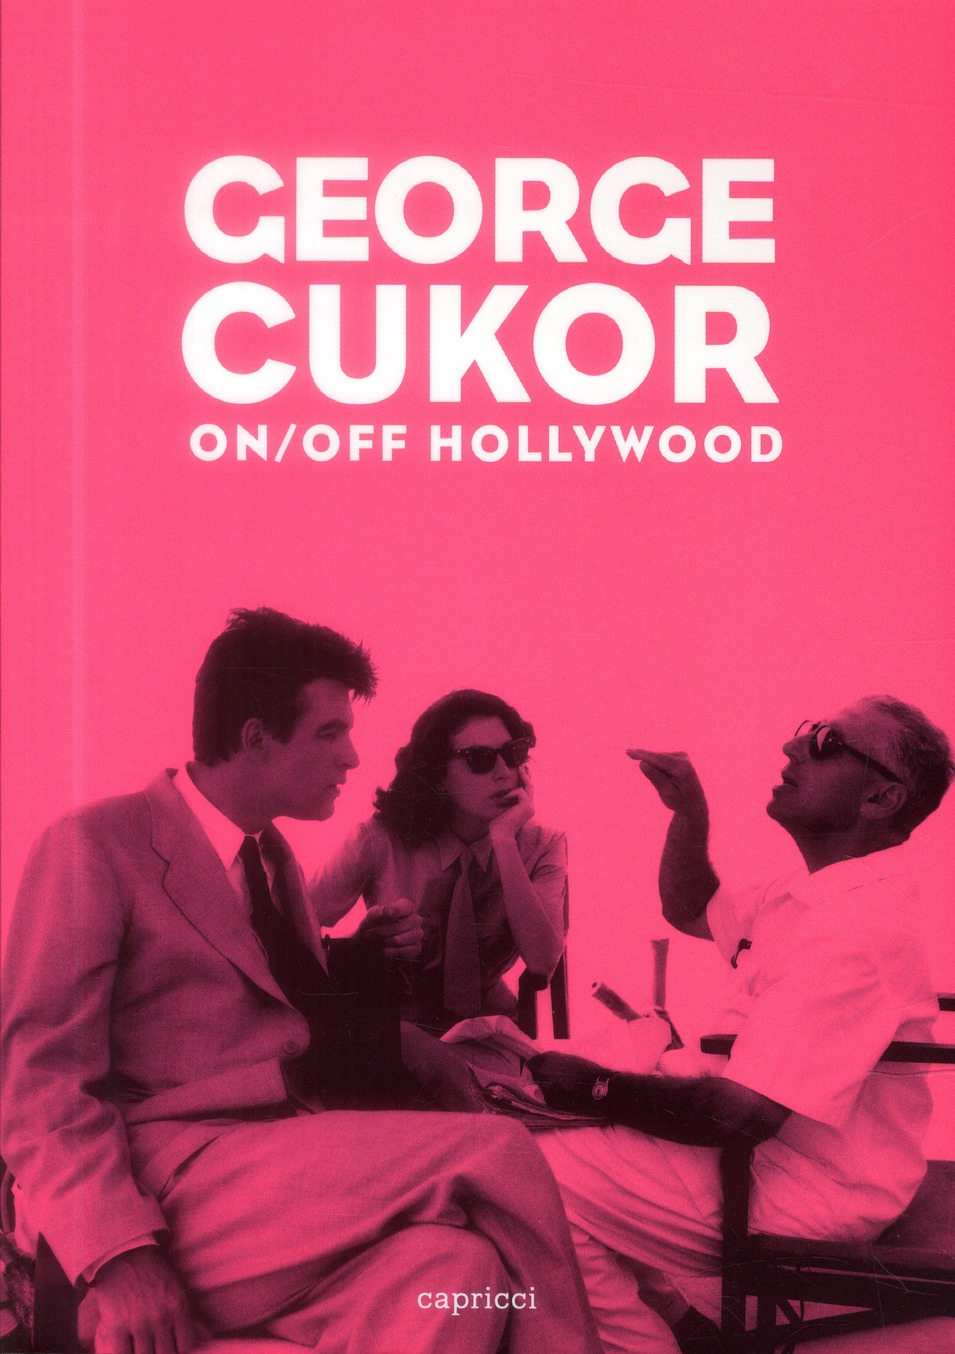 GEORGE CUKOR - ON/OFF HOLLYWOOD